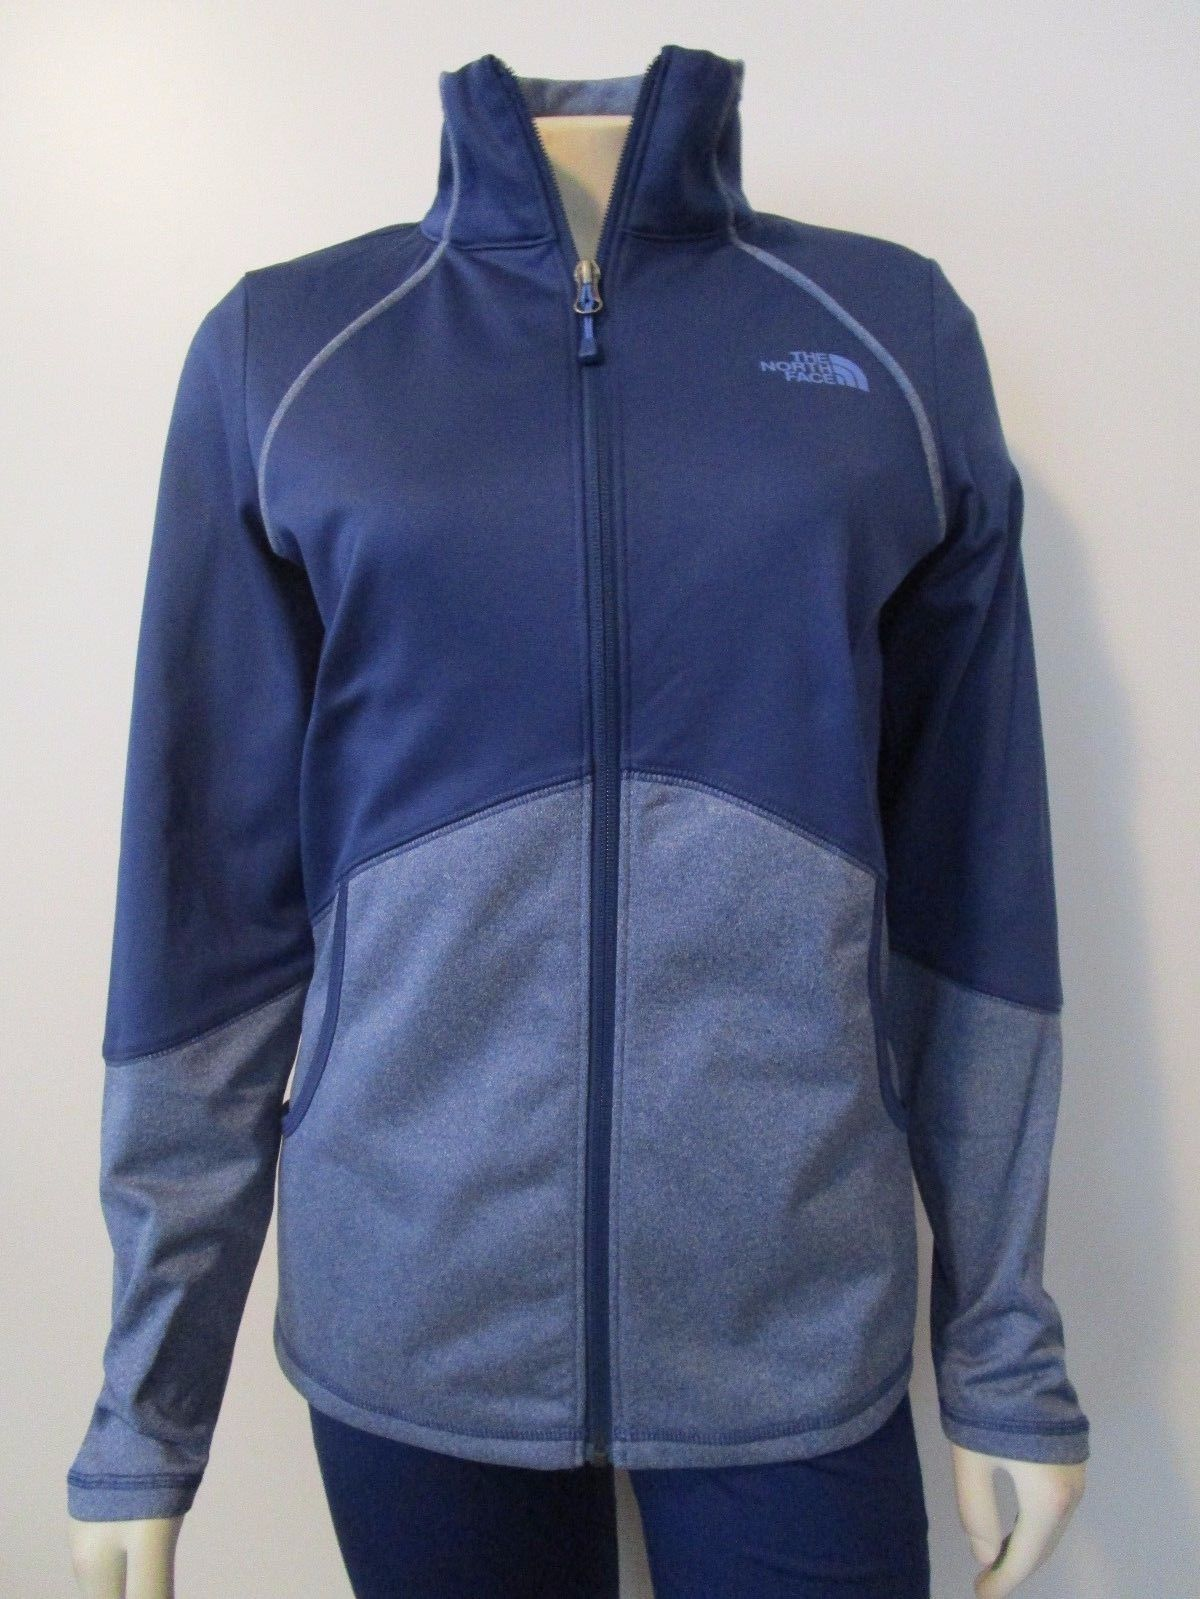 3e28518085a0 Womens Xs-S-M-L The North Face Tnf 100 Cinder Tenacious Fz Fleece Jacket  Blue